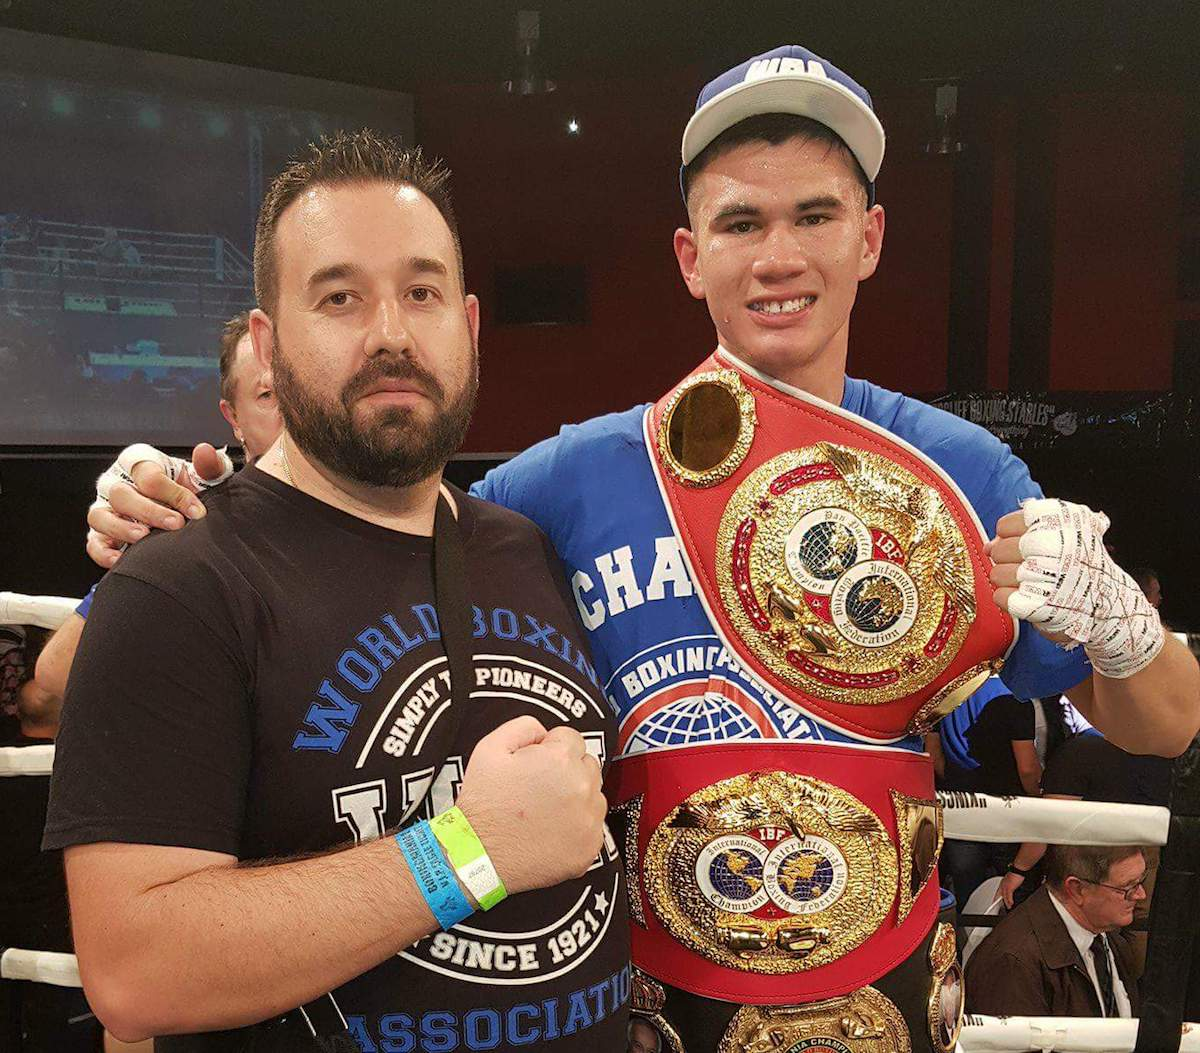 - Brisbane's Reagan Dessaix is looking to bounce back immediately after losing a controversial decision last Friday evening to former IBO World Champion Blake Caparello.